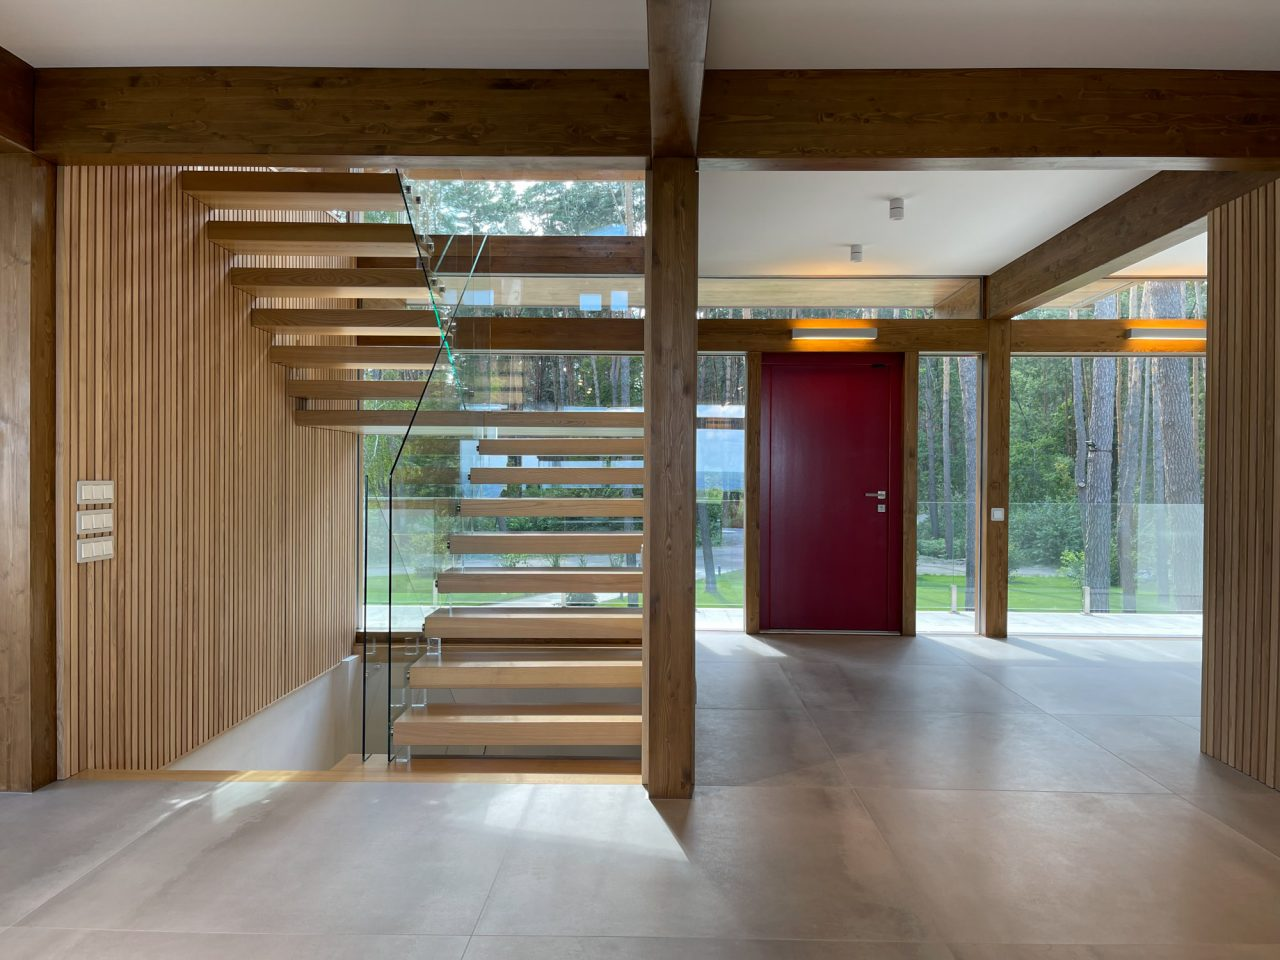 Hlass_house_KAGER - Hurii_19